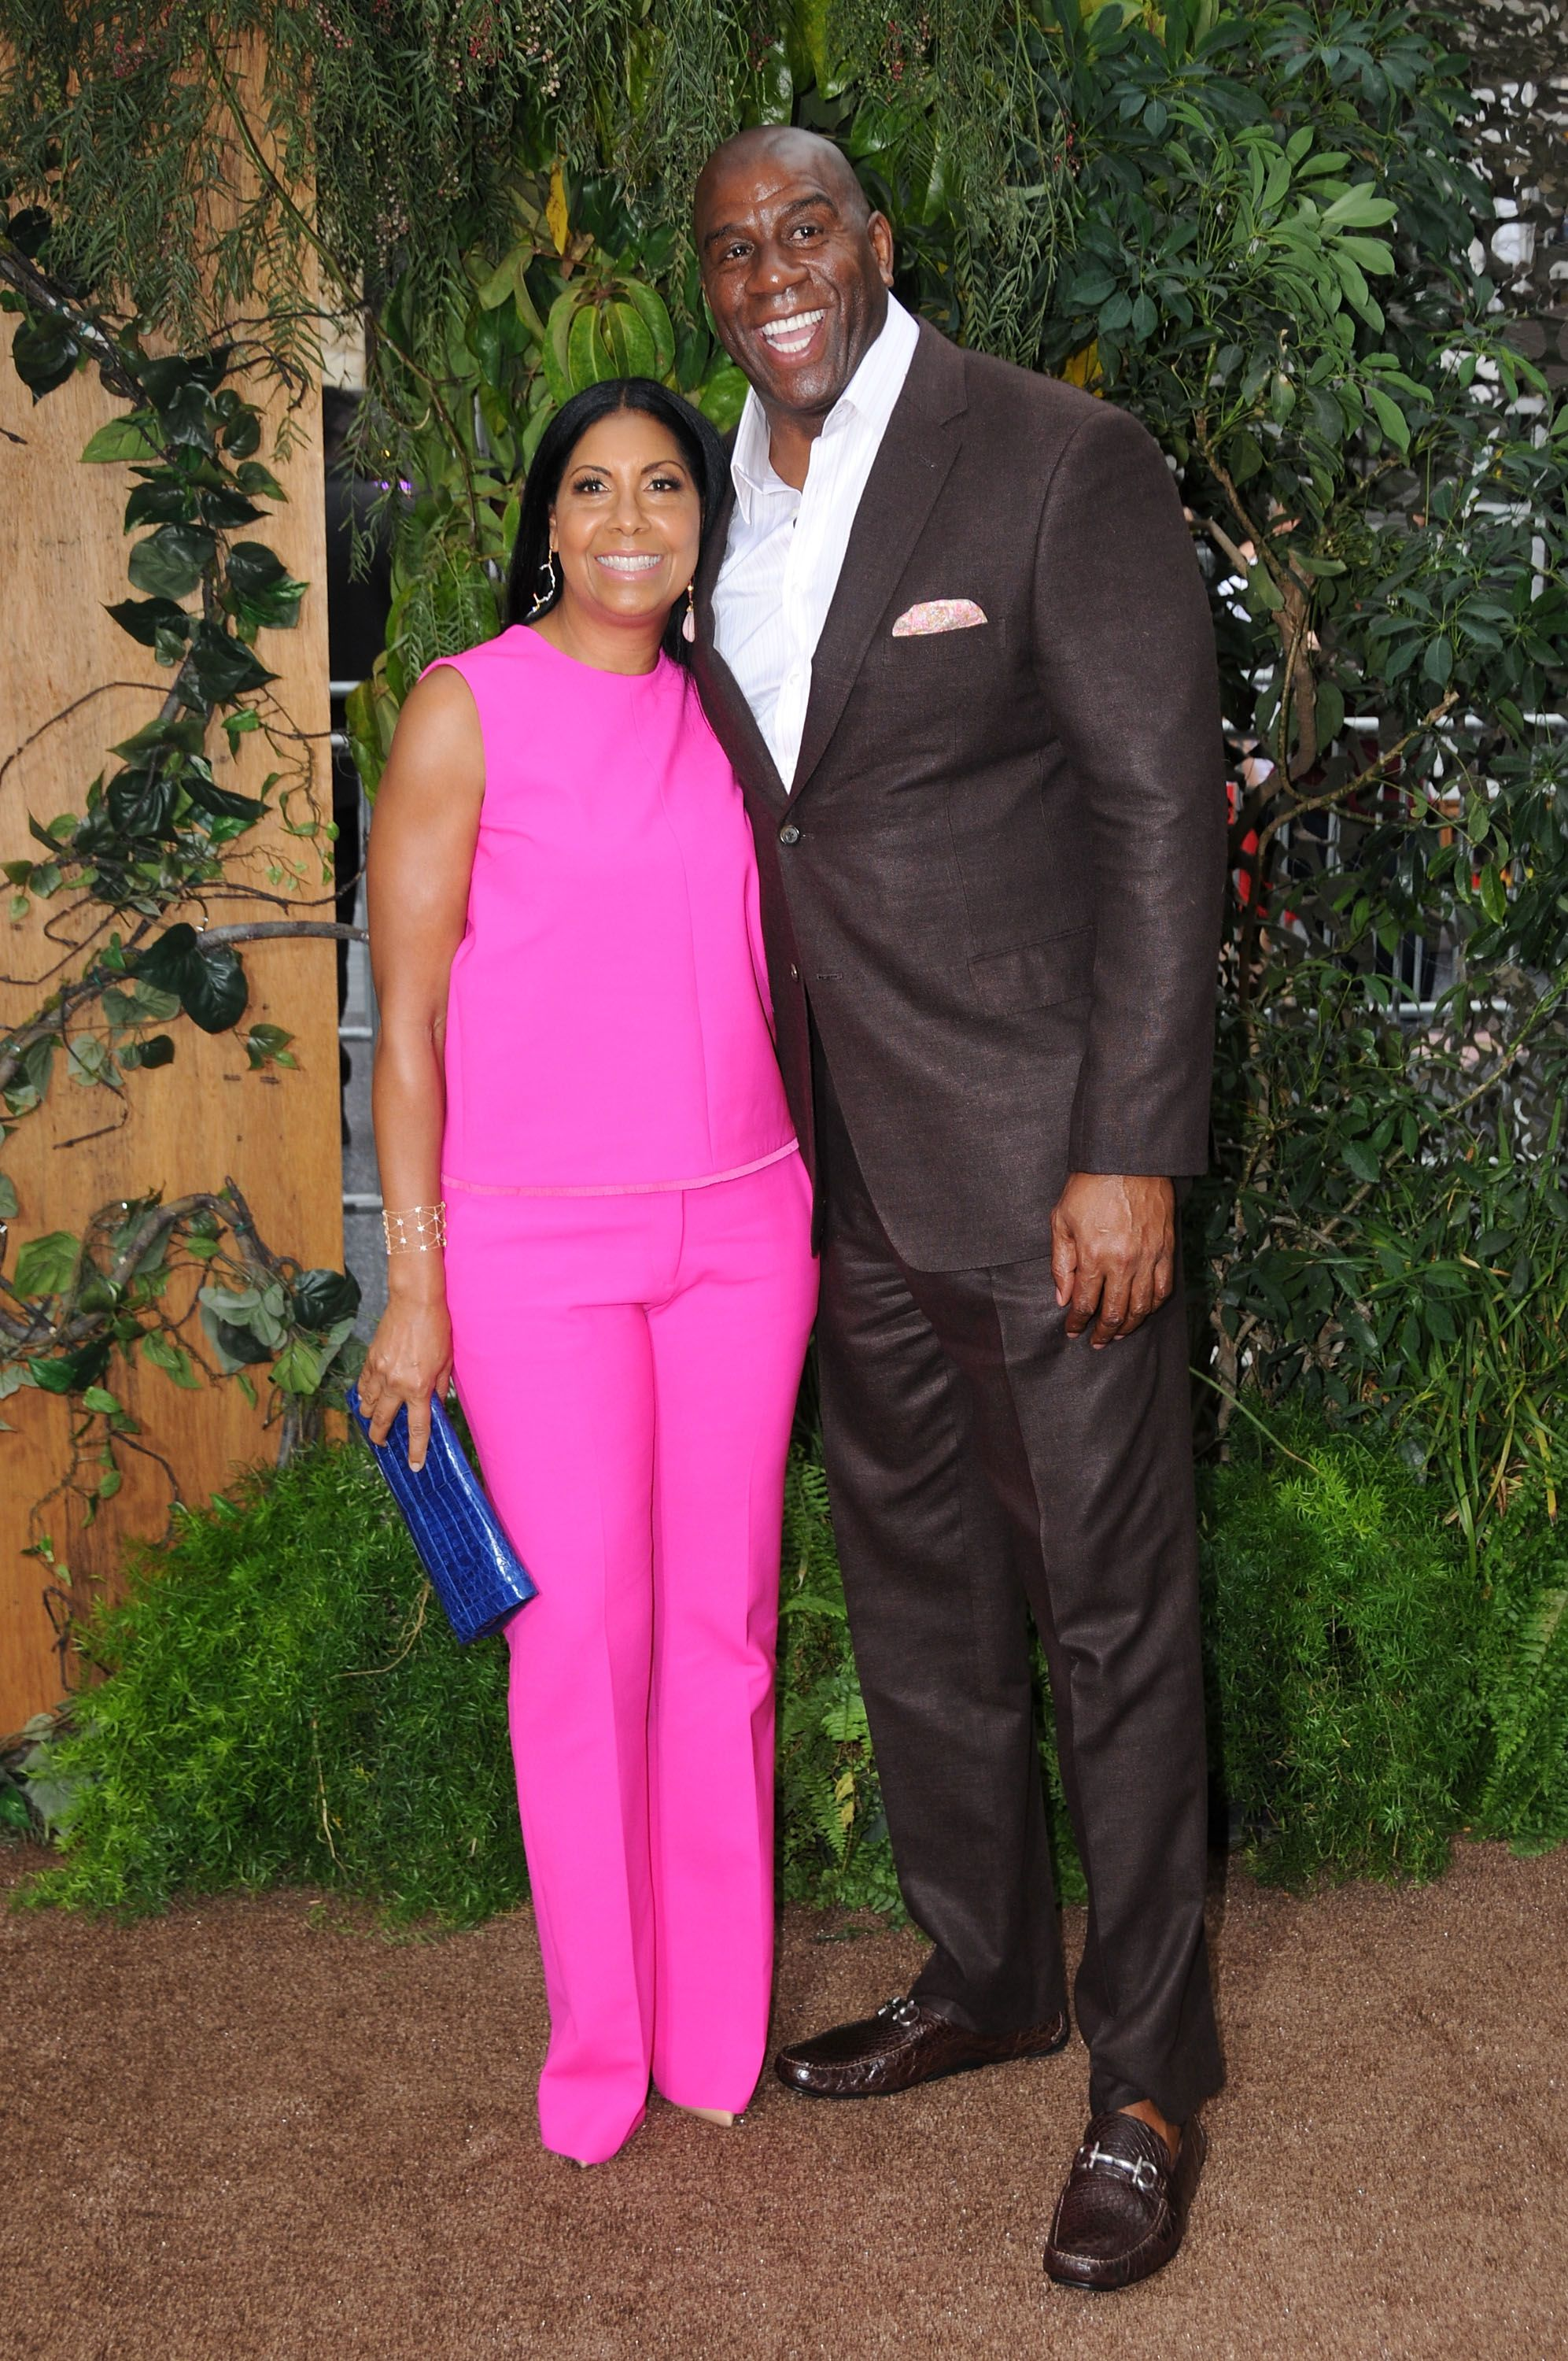 Cookie Johnson and Magic Johnson at the premiere of Warner Bros. Pictures' 'The Legend Of Tarzan' at TCL Chinese Theatre on June 27, 2016 in Hollywood, California | Photo: Getty Images